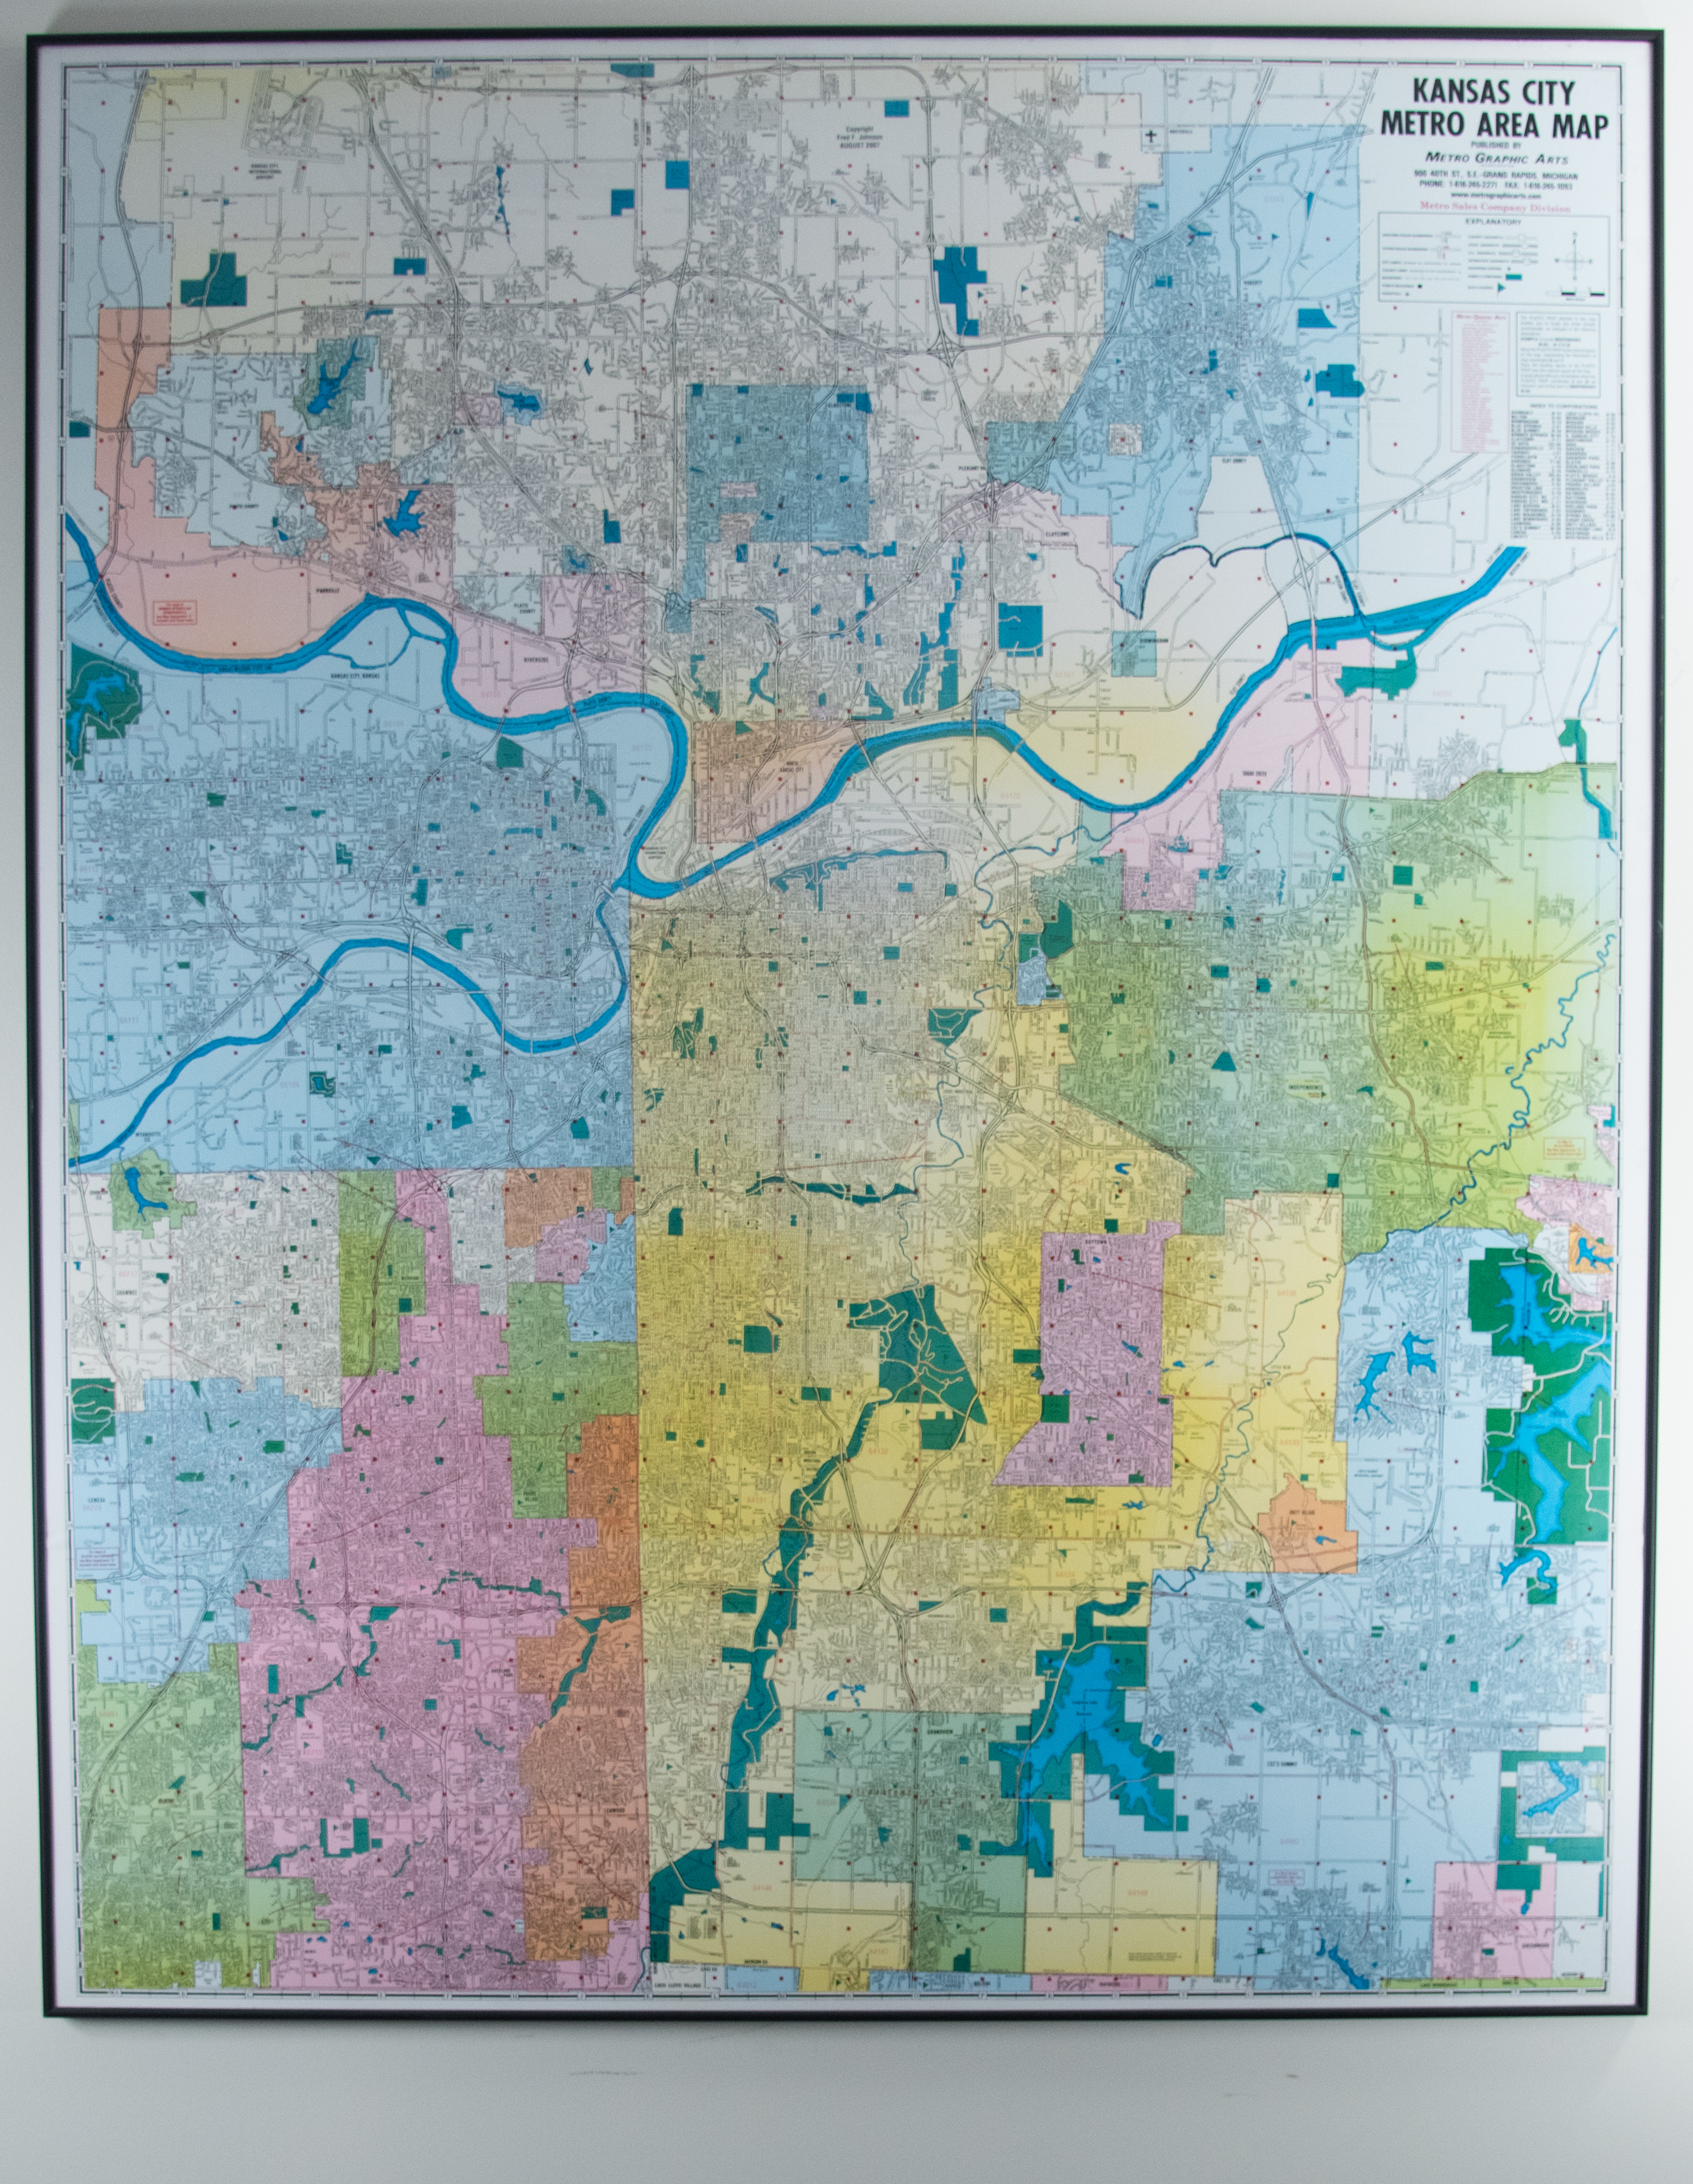 Map of Kansas City Metro Area | Kansas City Public Library